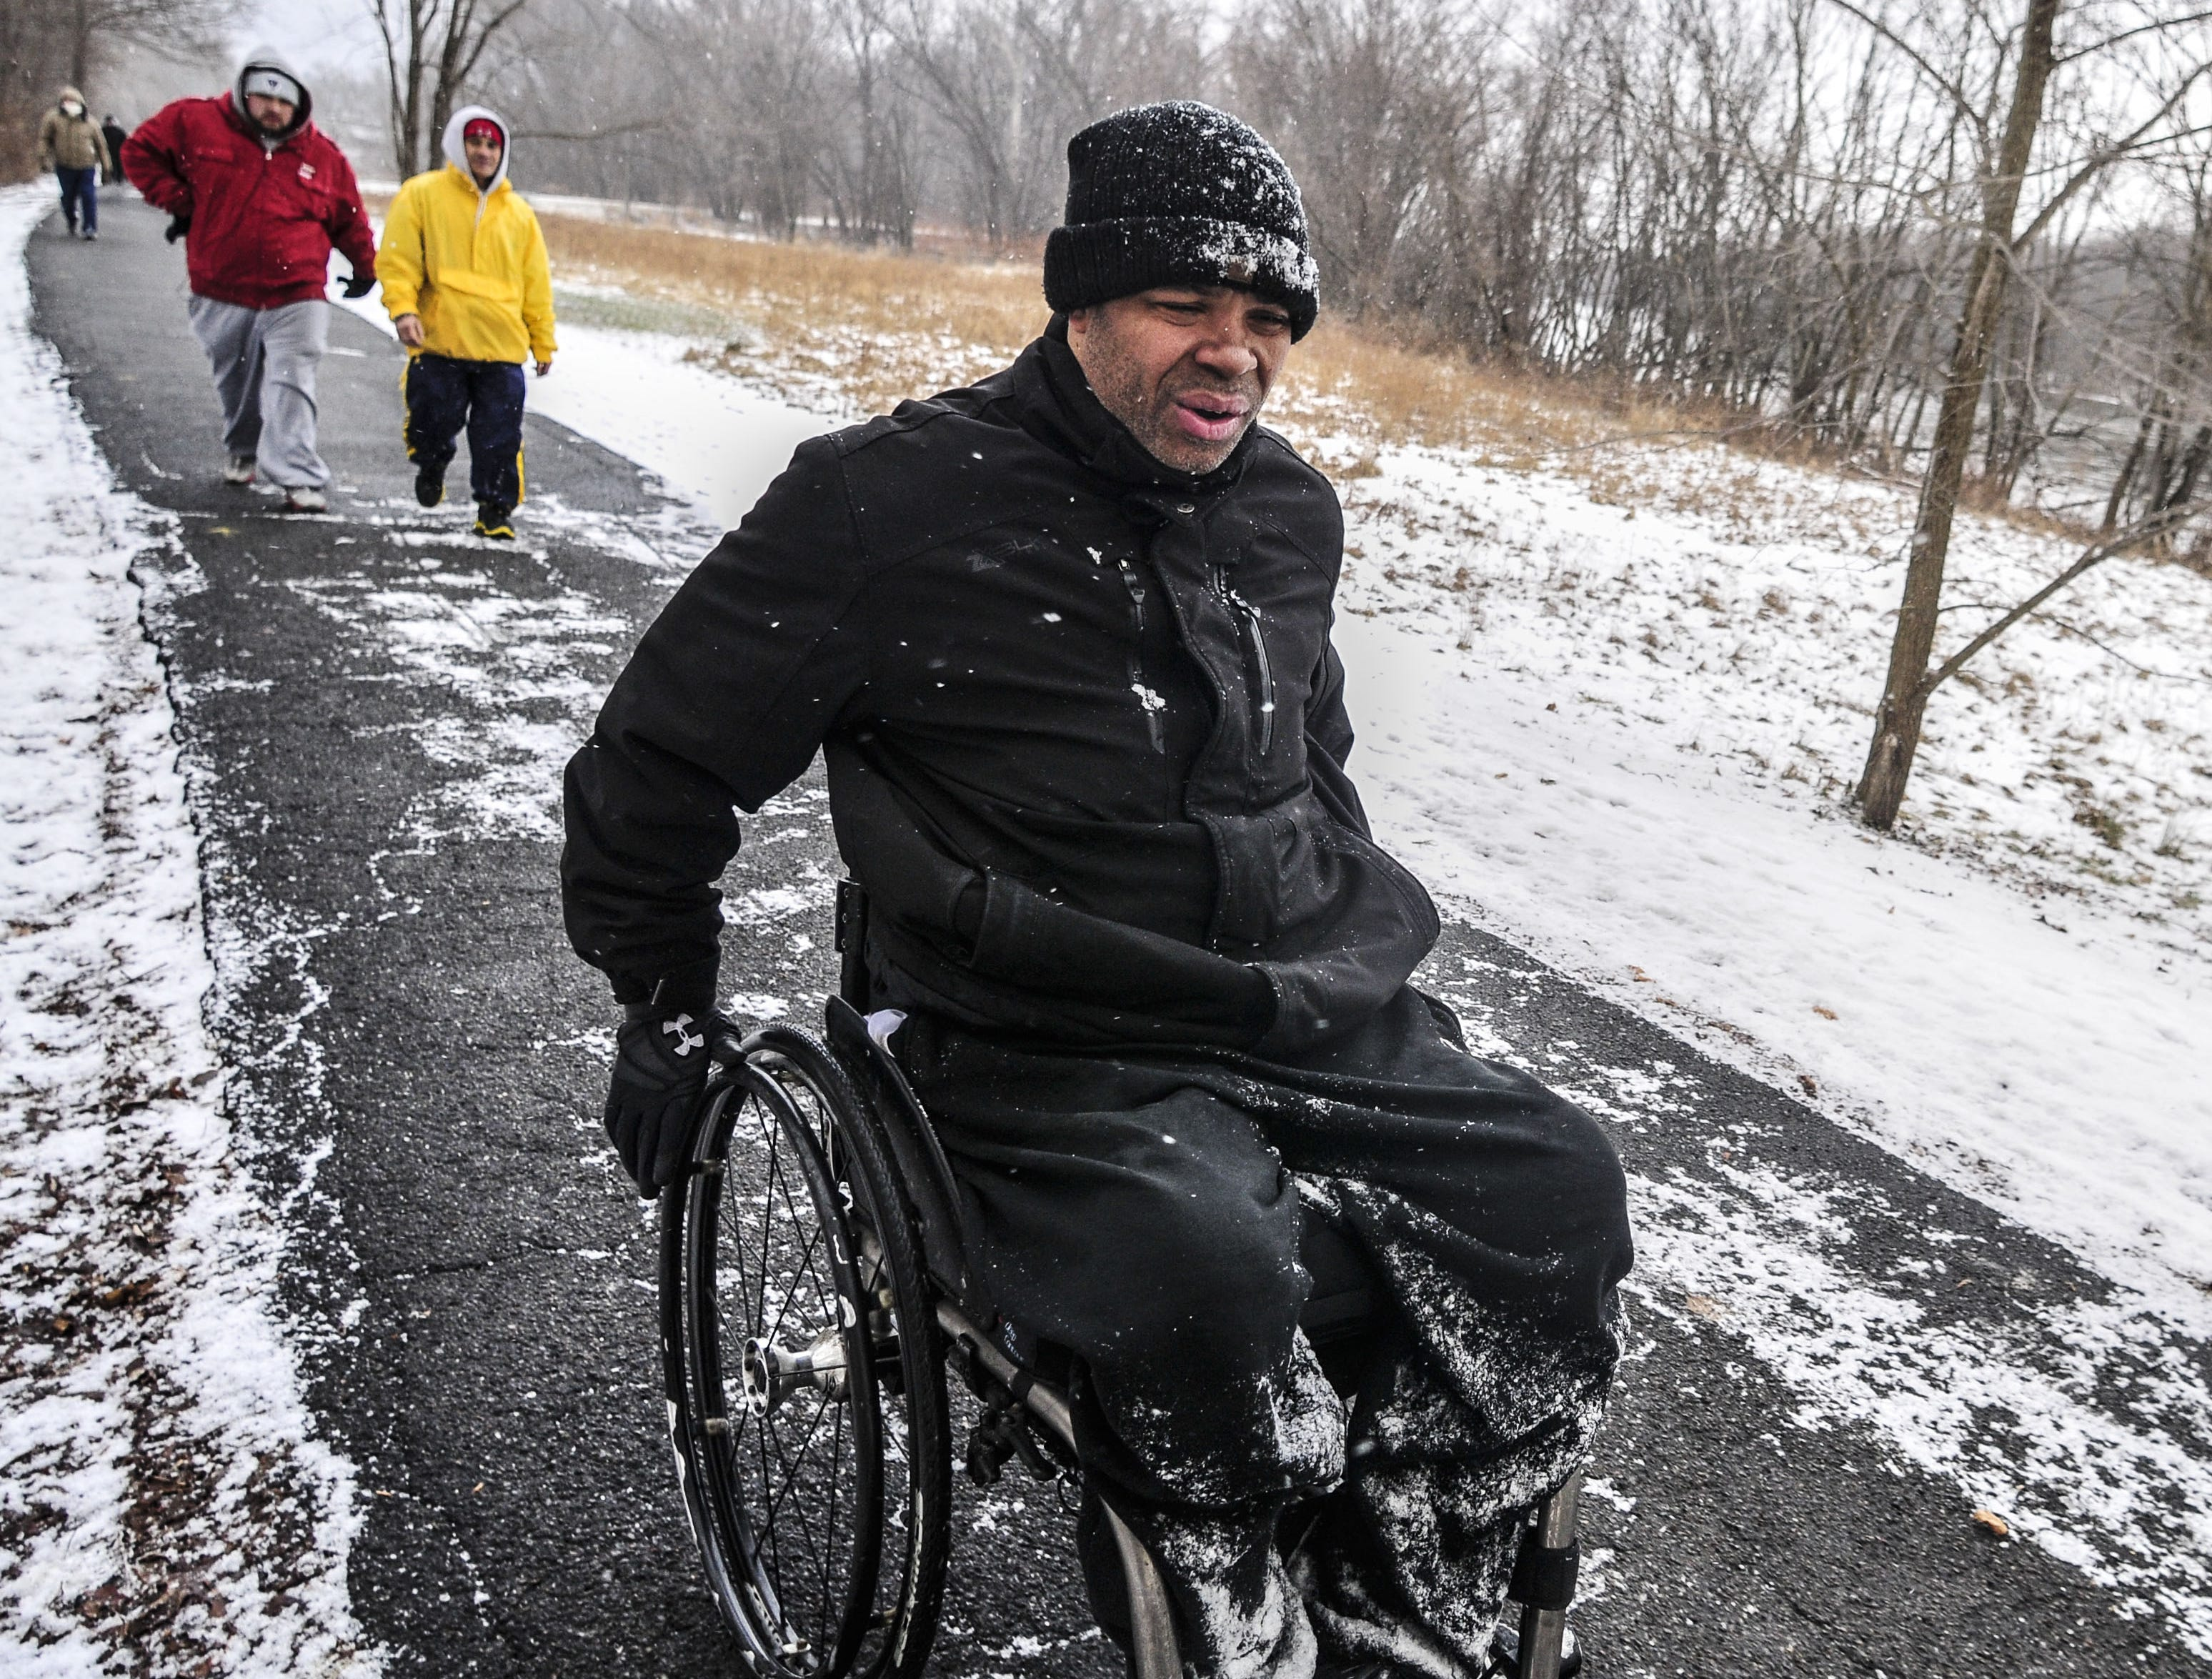 From 2013: Damon Rozier, from Brooklyn, participates in the Family Resolution 5K Fun Run/Walk hosted by the YMCA of Broome County on Tuesday at Otsiningo Park in the Town of Dickinson. Rozier, a quadriplegic, is participating in the 5K for the second time.